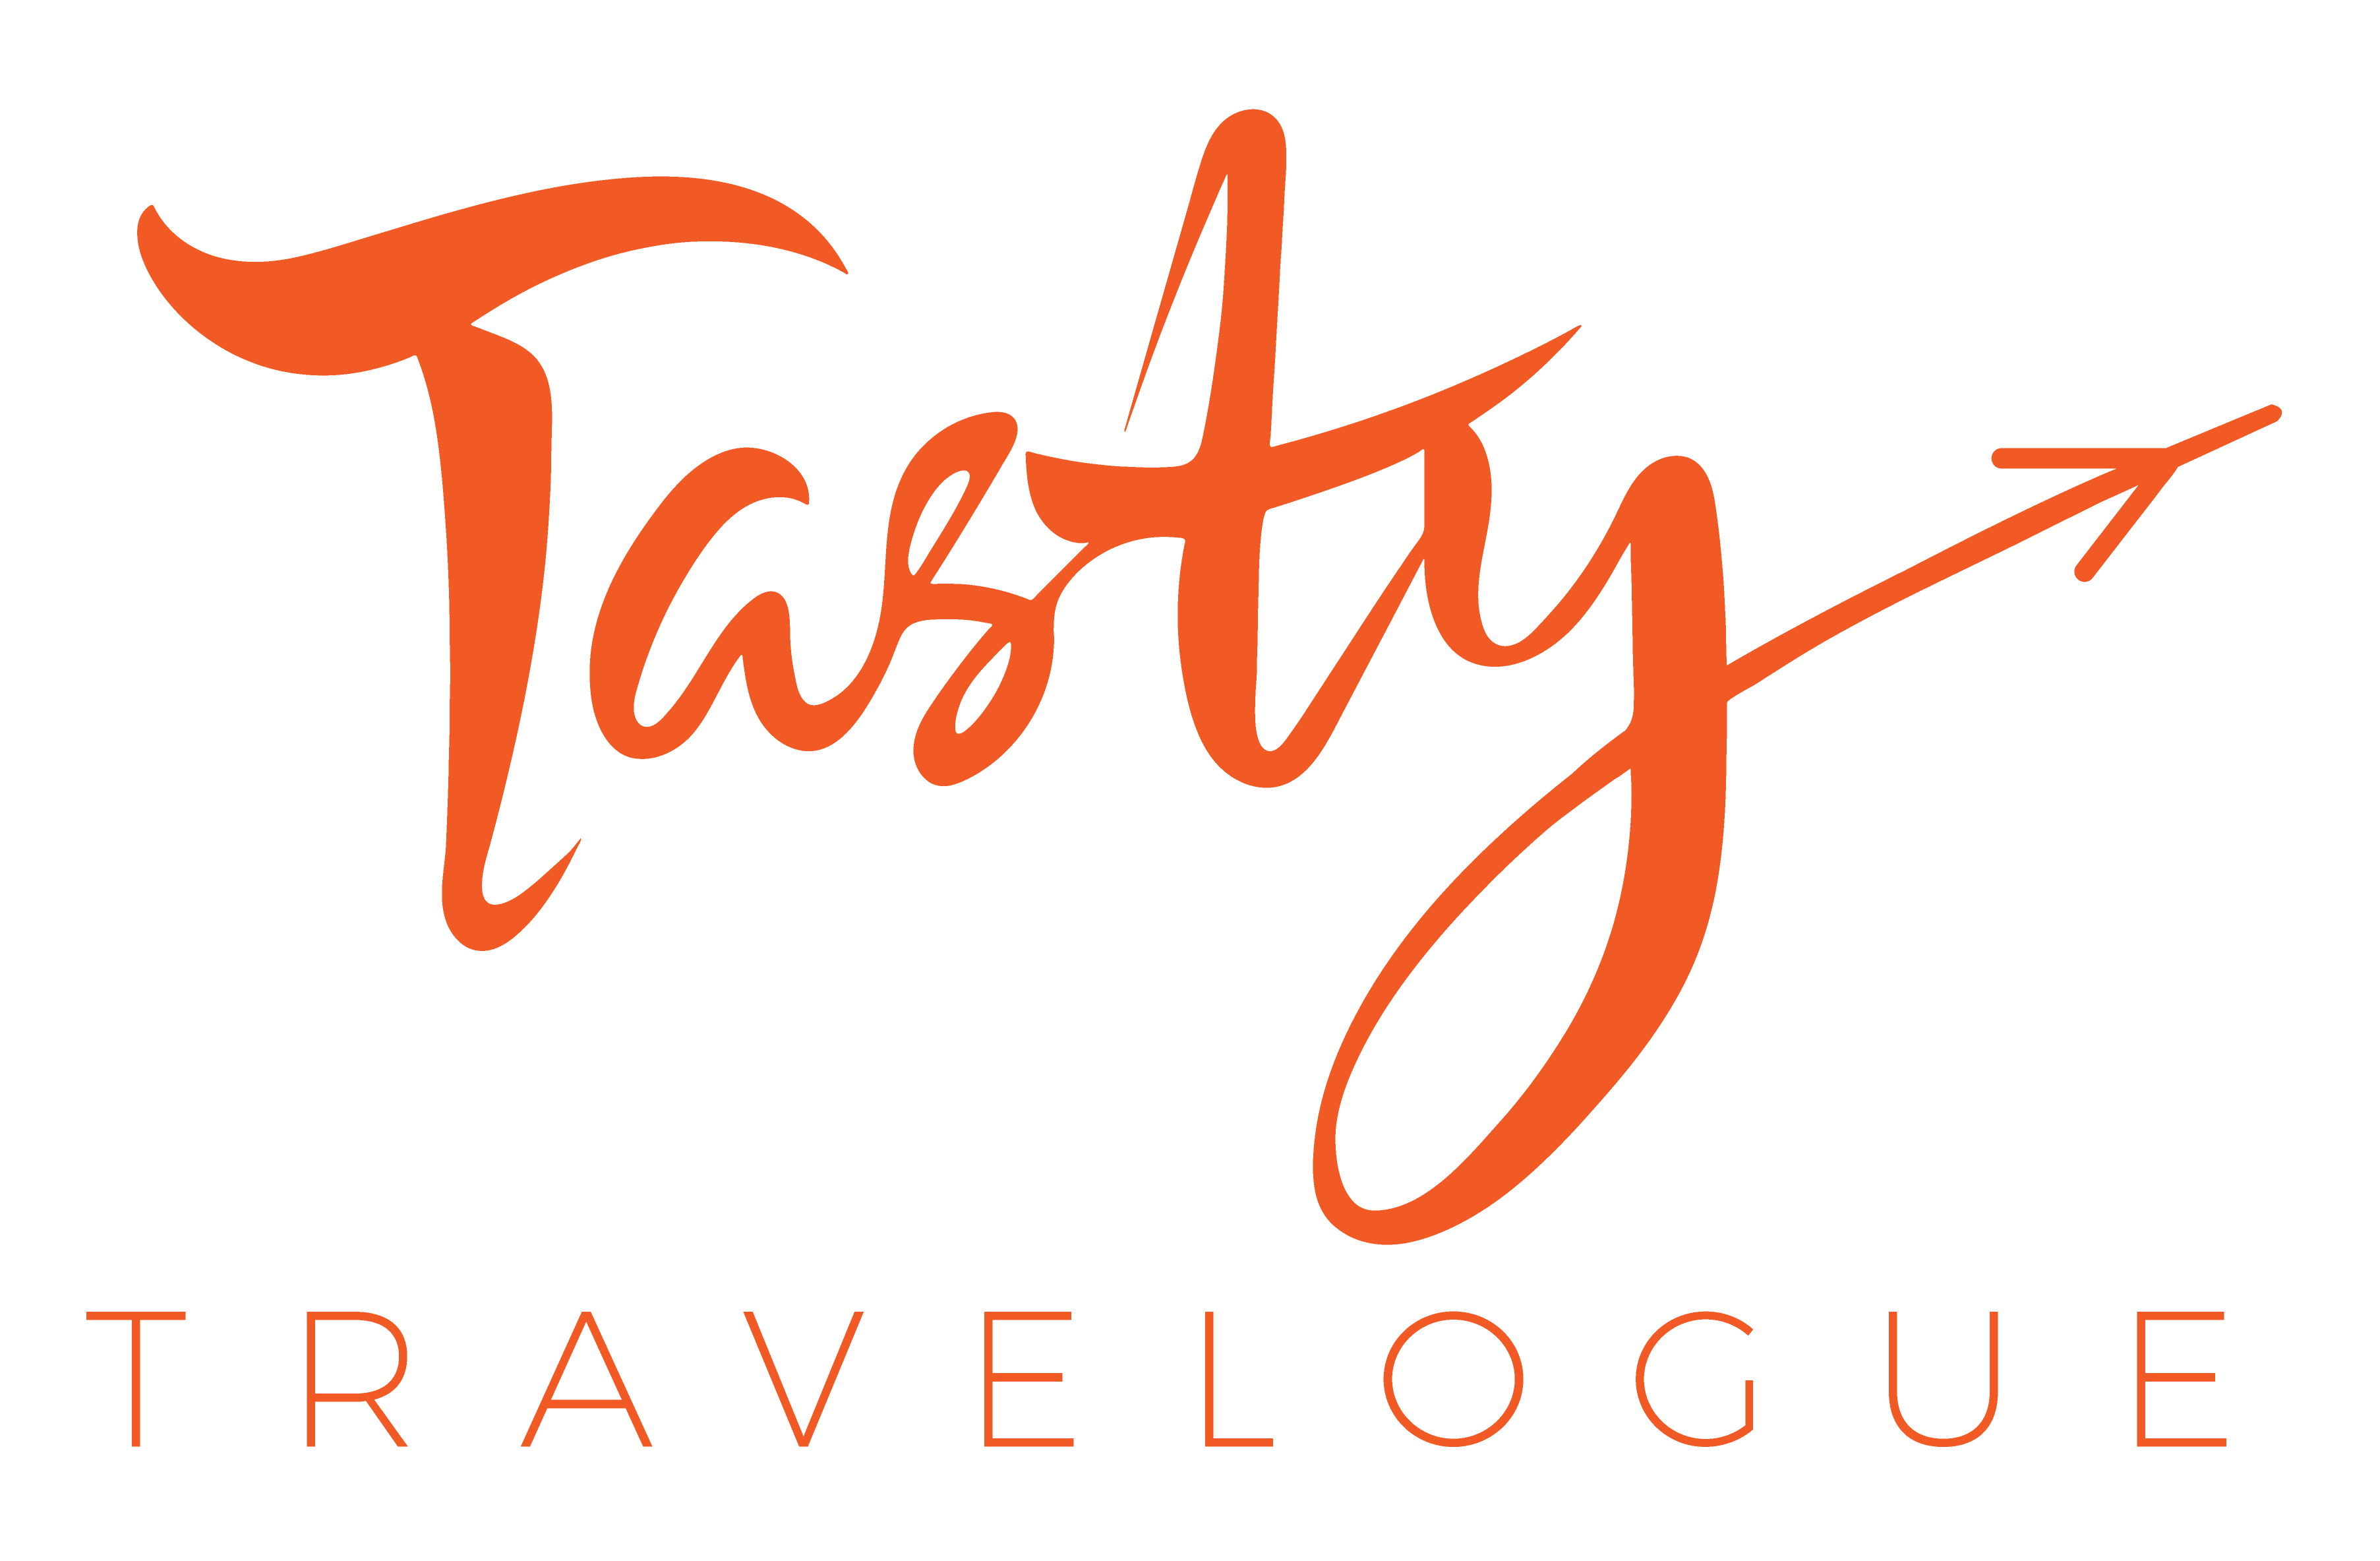 Tasty Travelogue